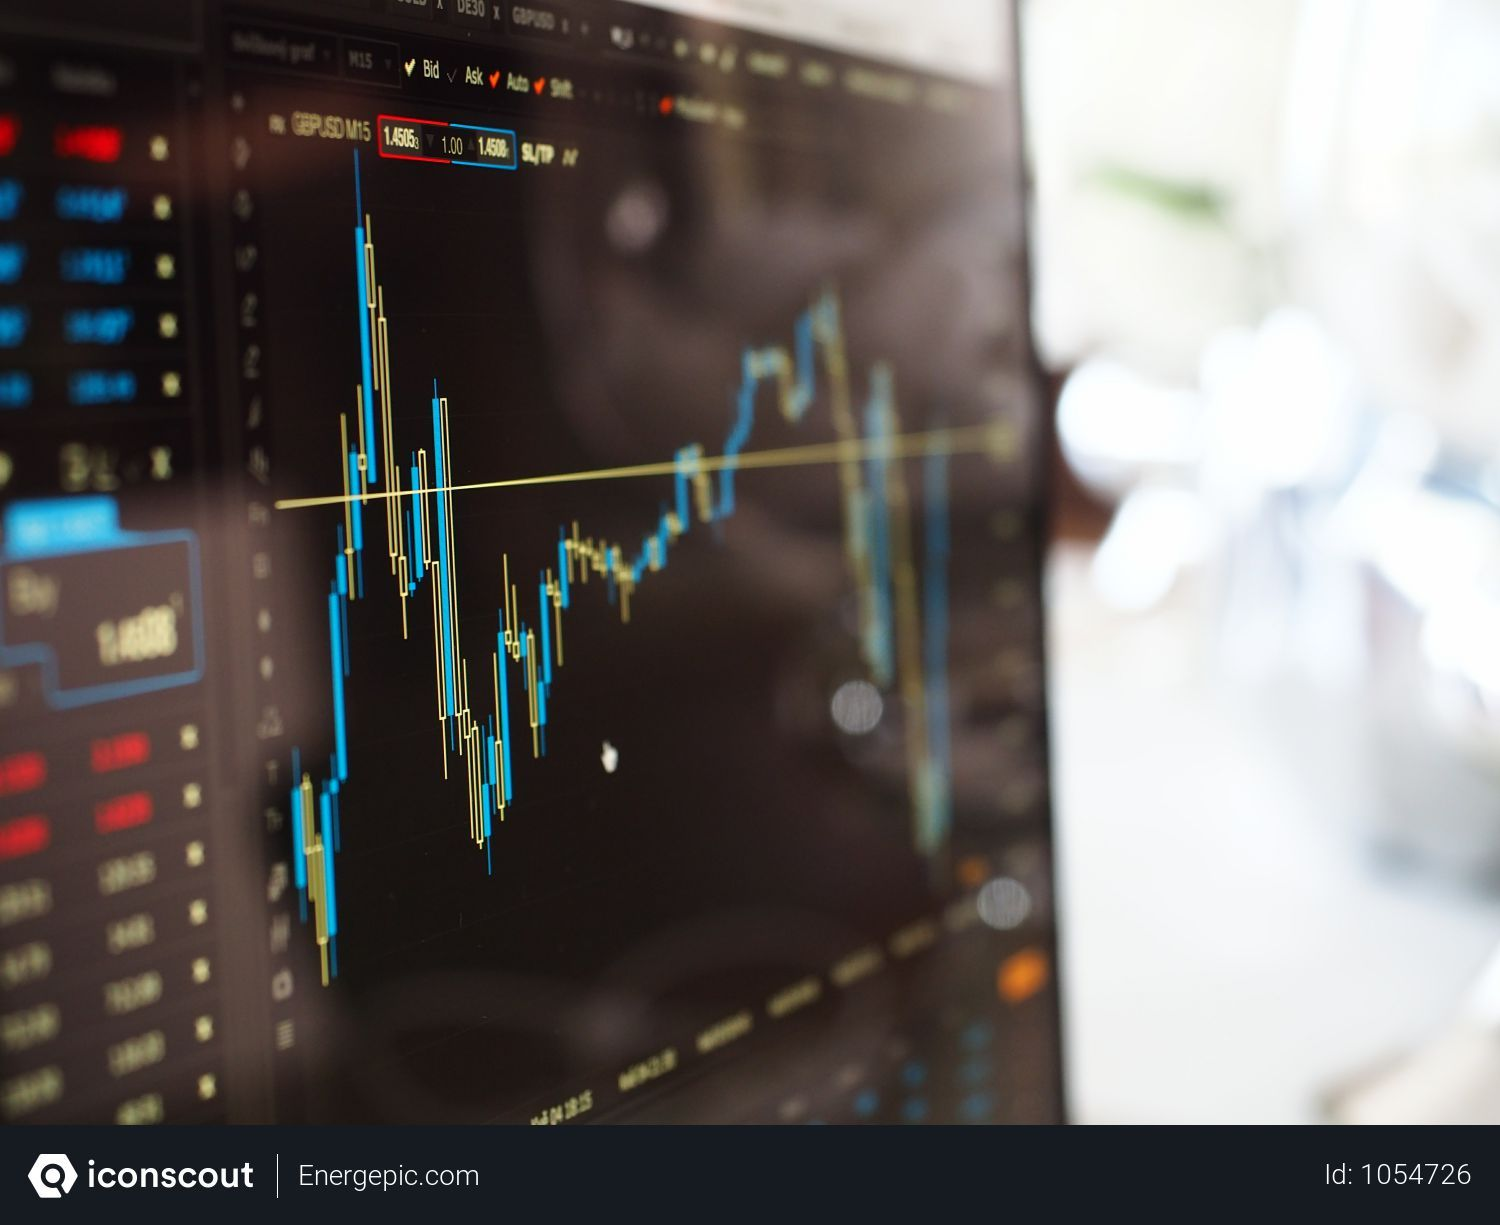 Free Blue And Yellow Graph On Stock Market Monitor Photo Download In Png Jpg Format Stock Trading Investing In Stocks Financial Markets